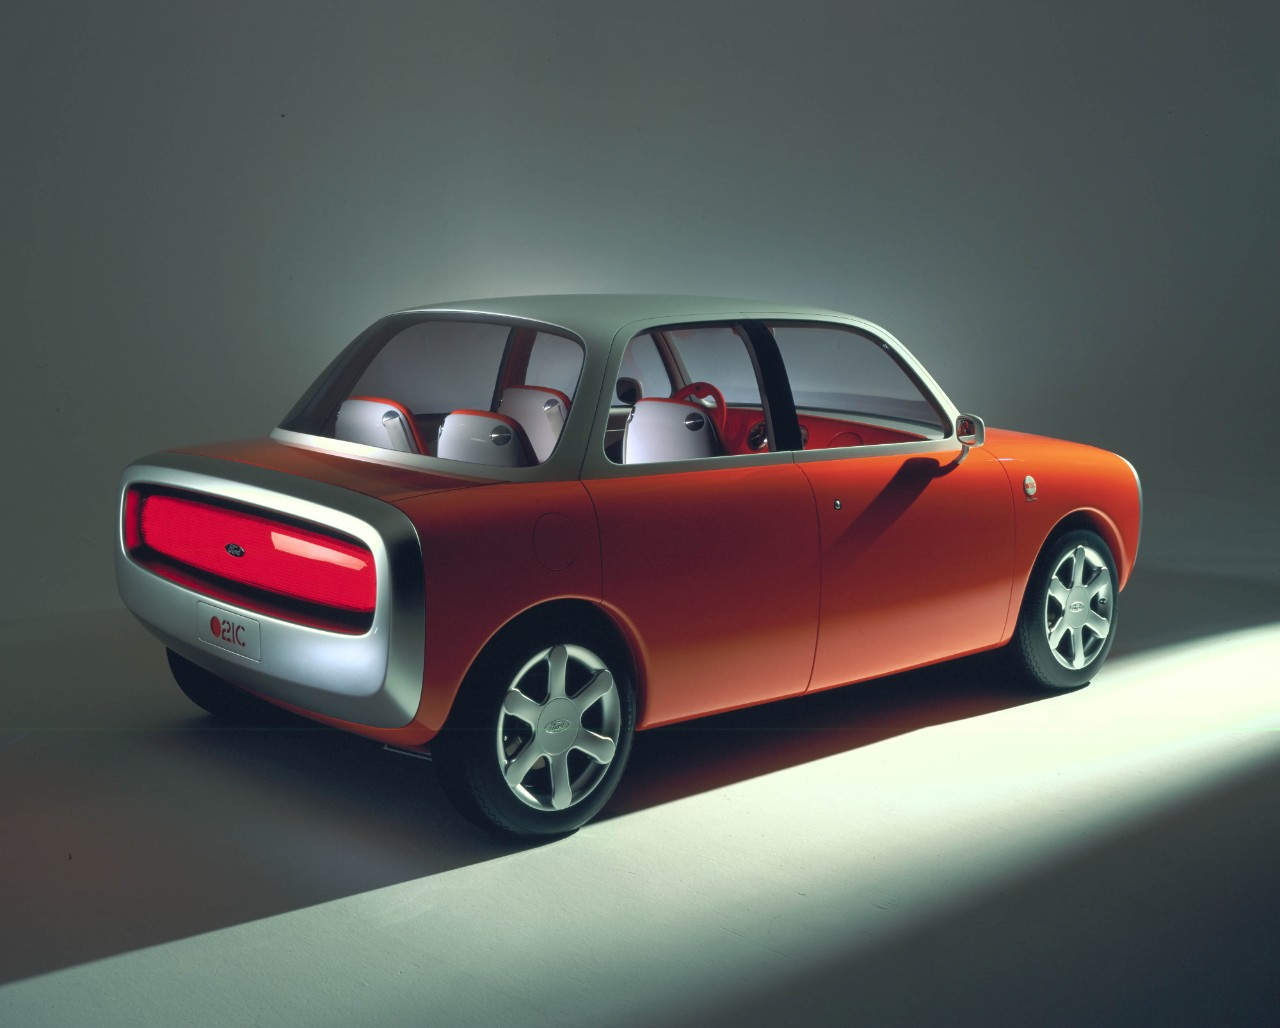 Ford 021C concept car